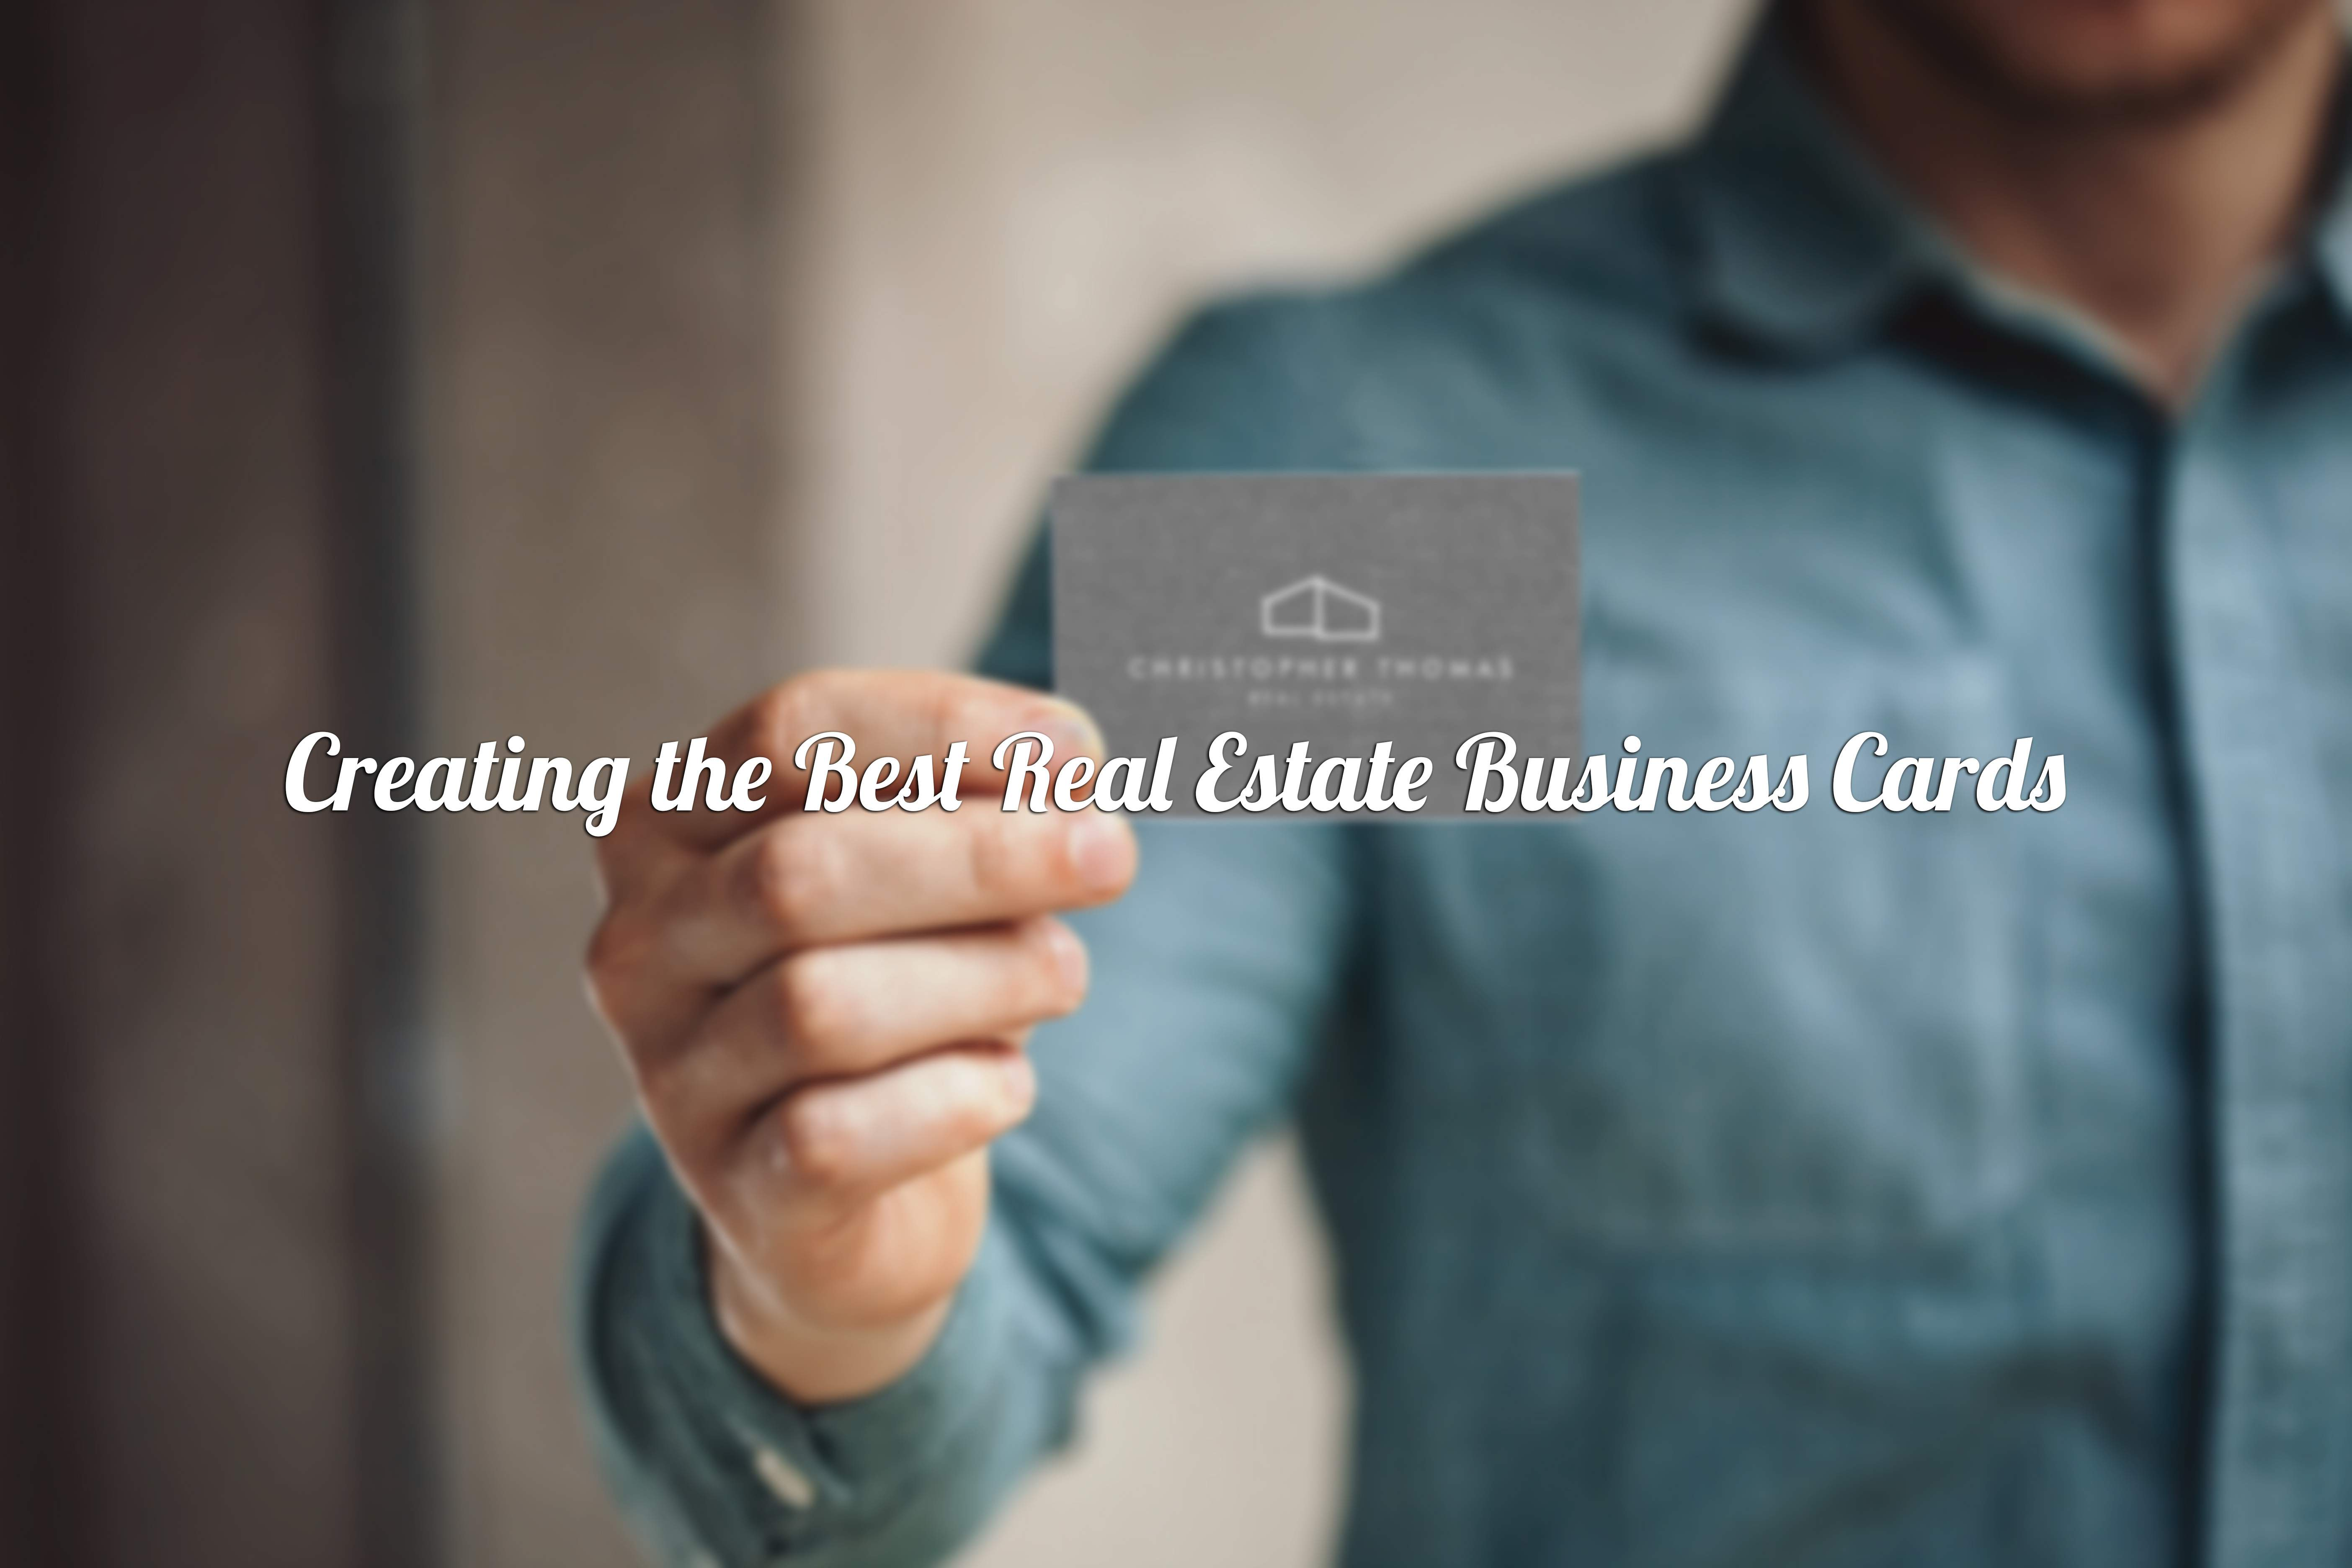 Creating The Best Real Estate Business Cards